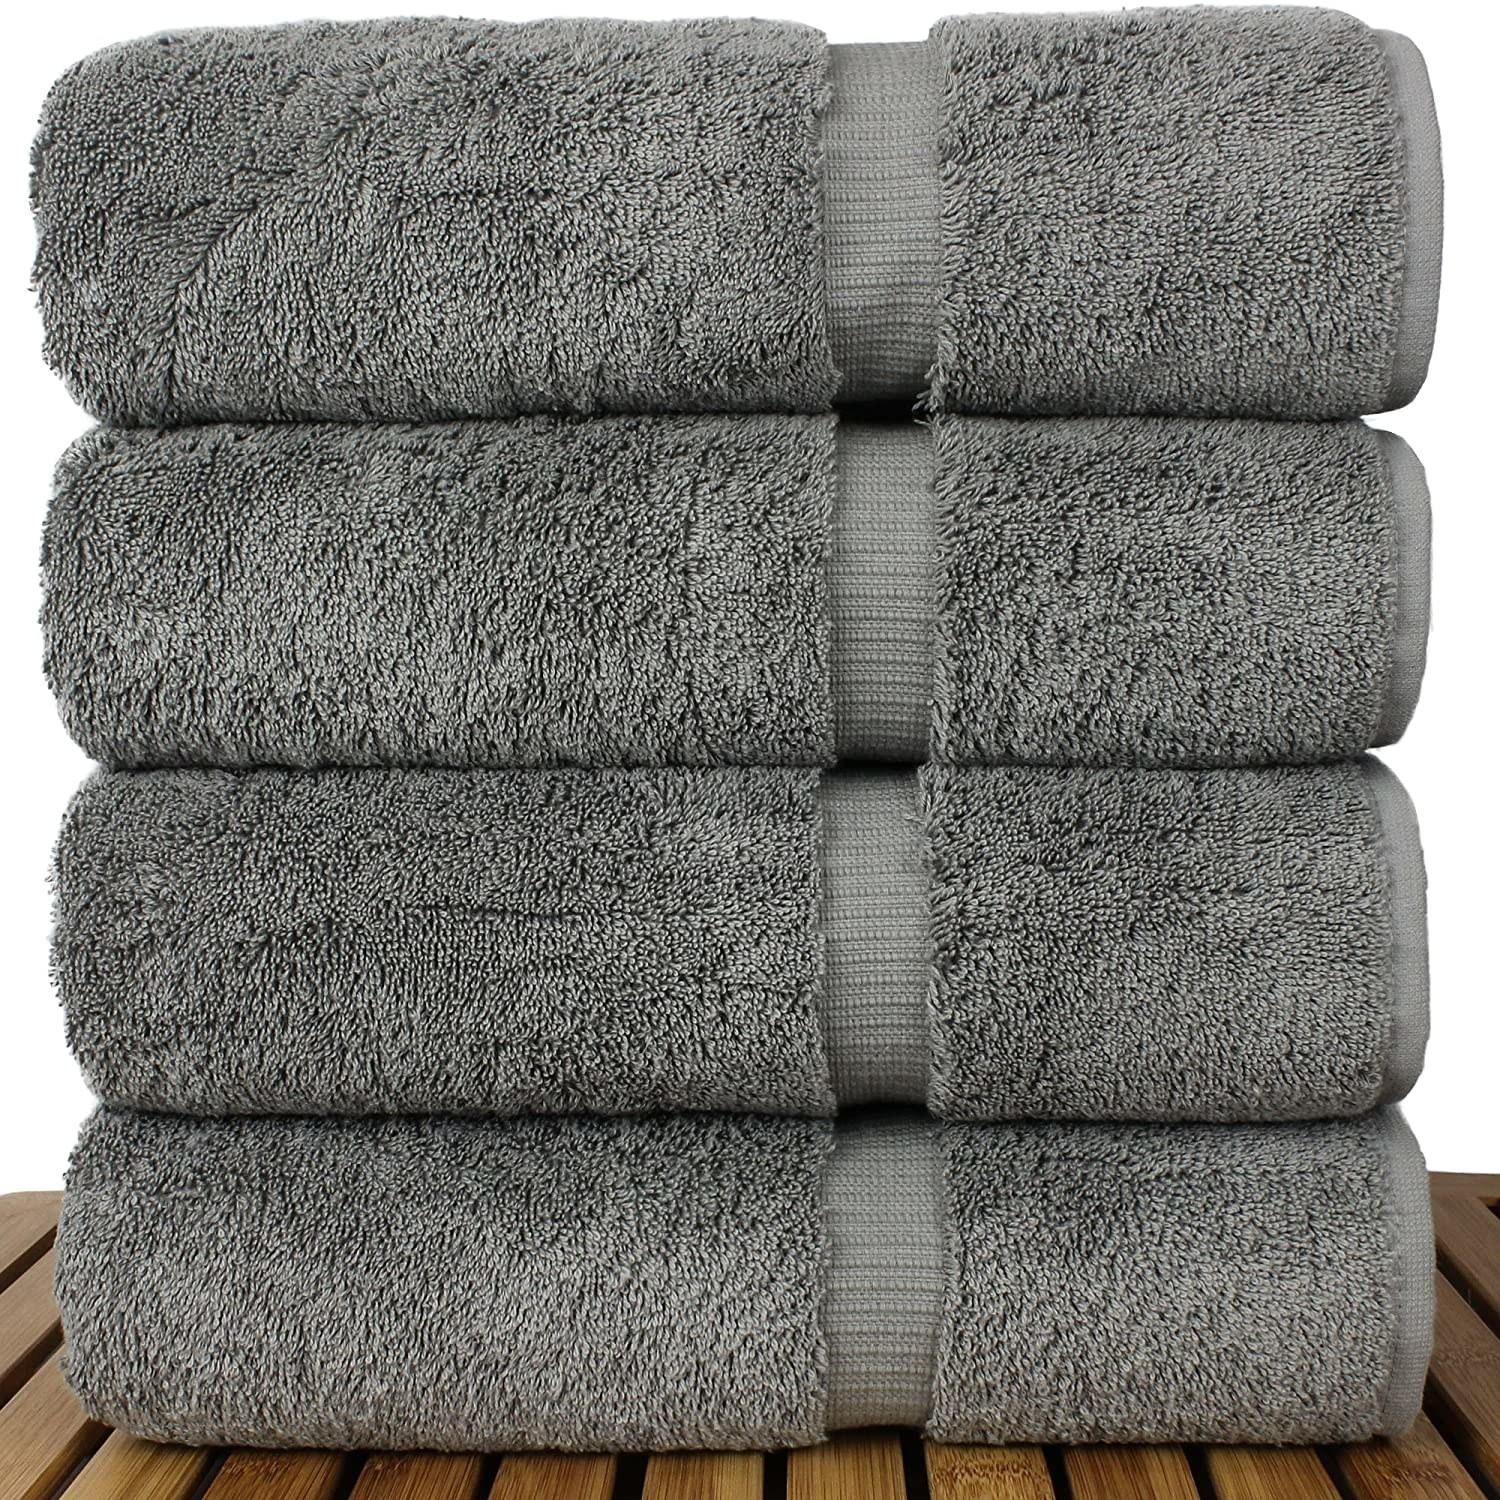 A stack of four gray linen bath towels